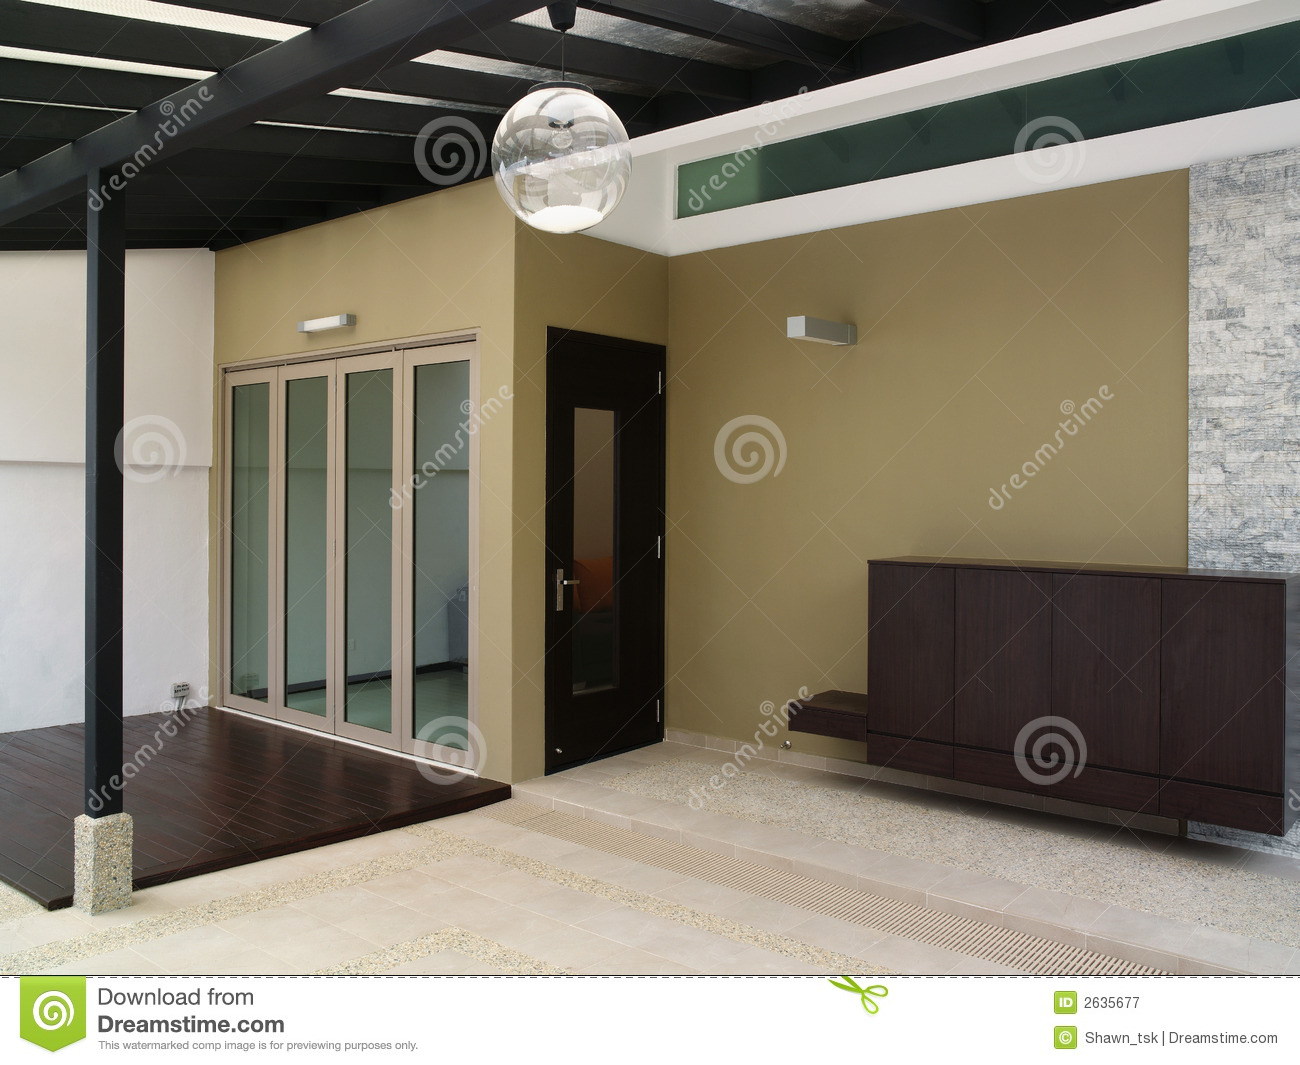 Foyer Clipart : Interior design foyer royalty free stock photography